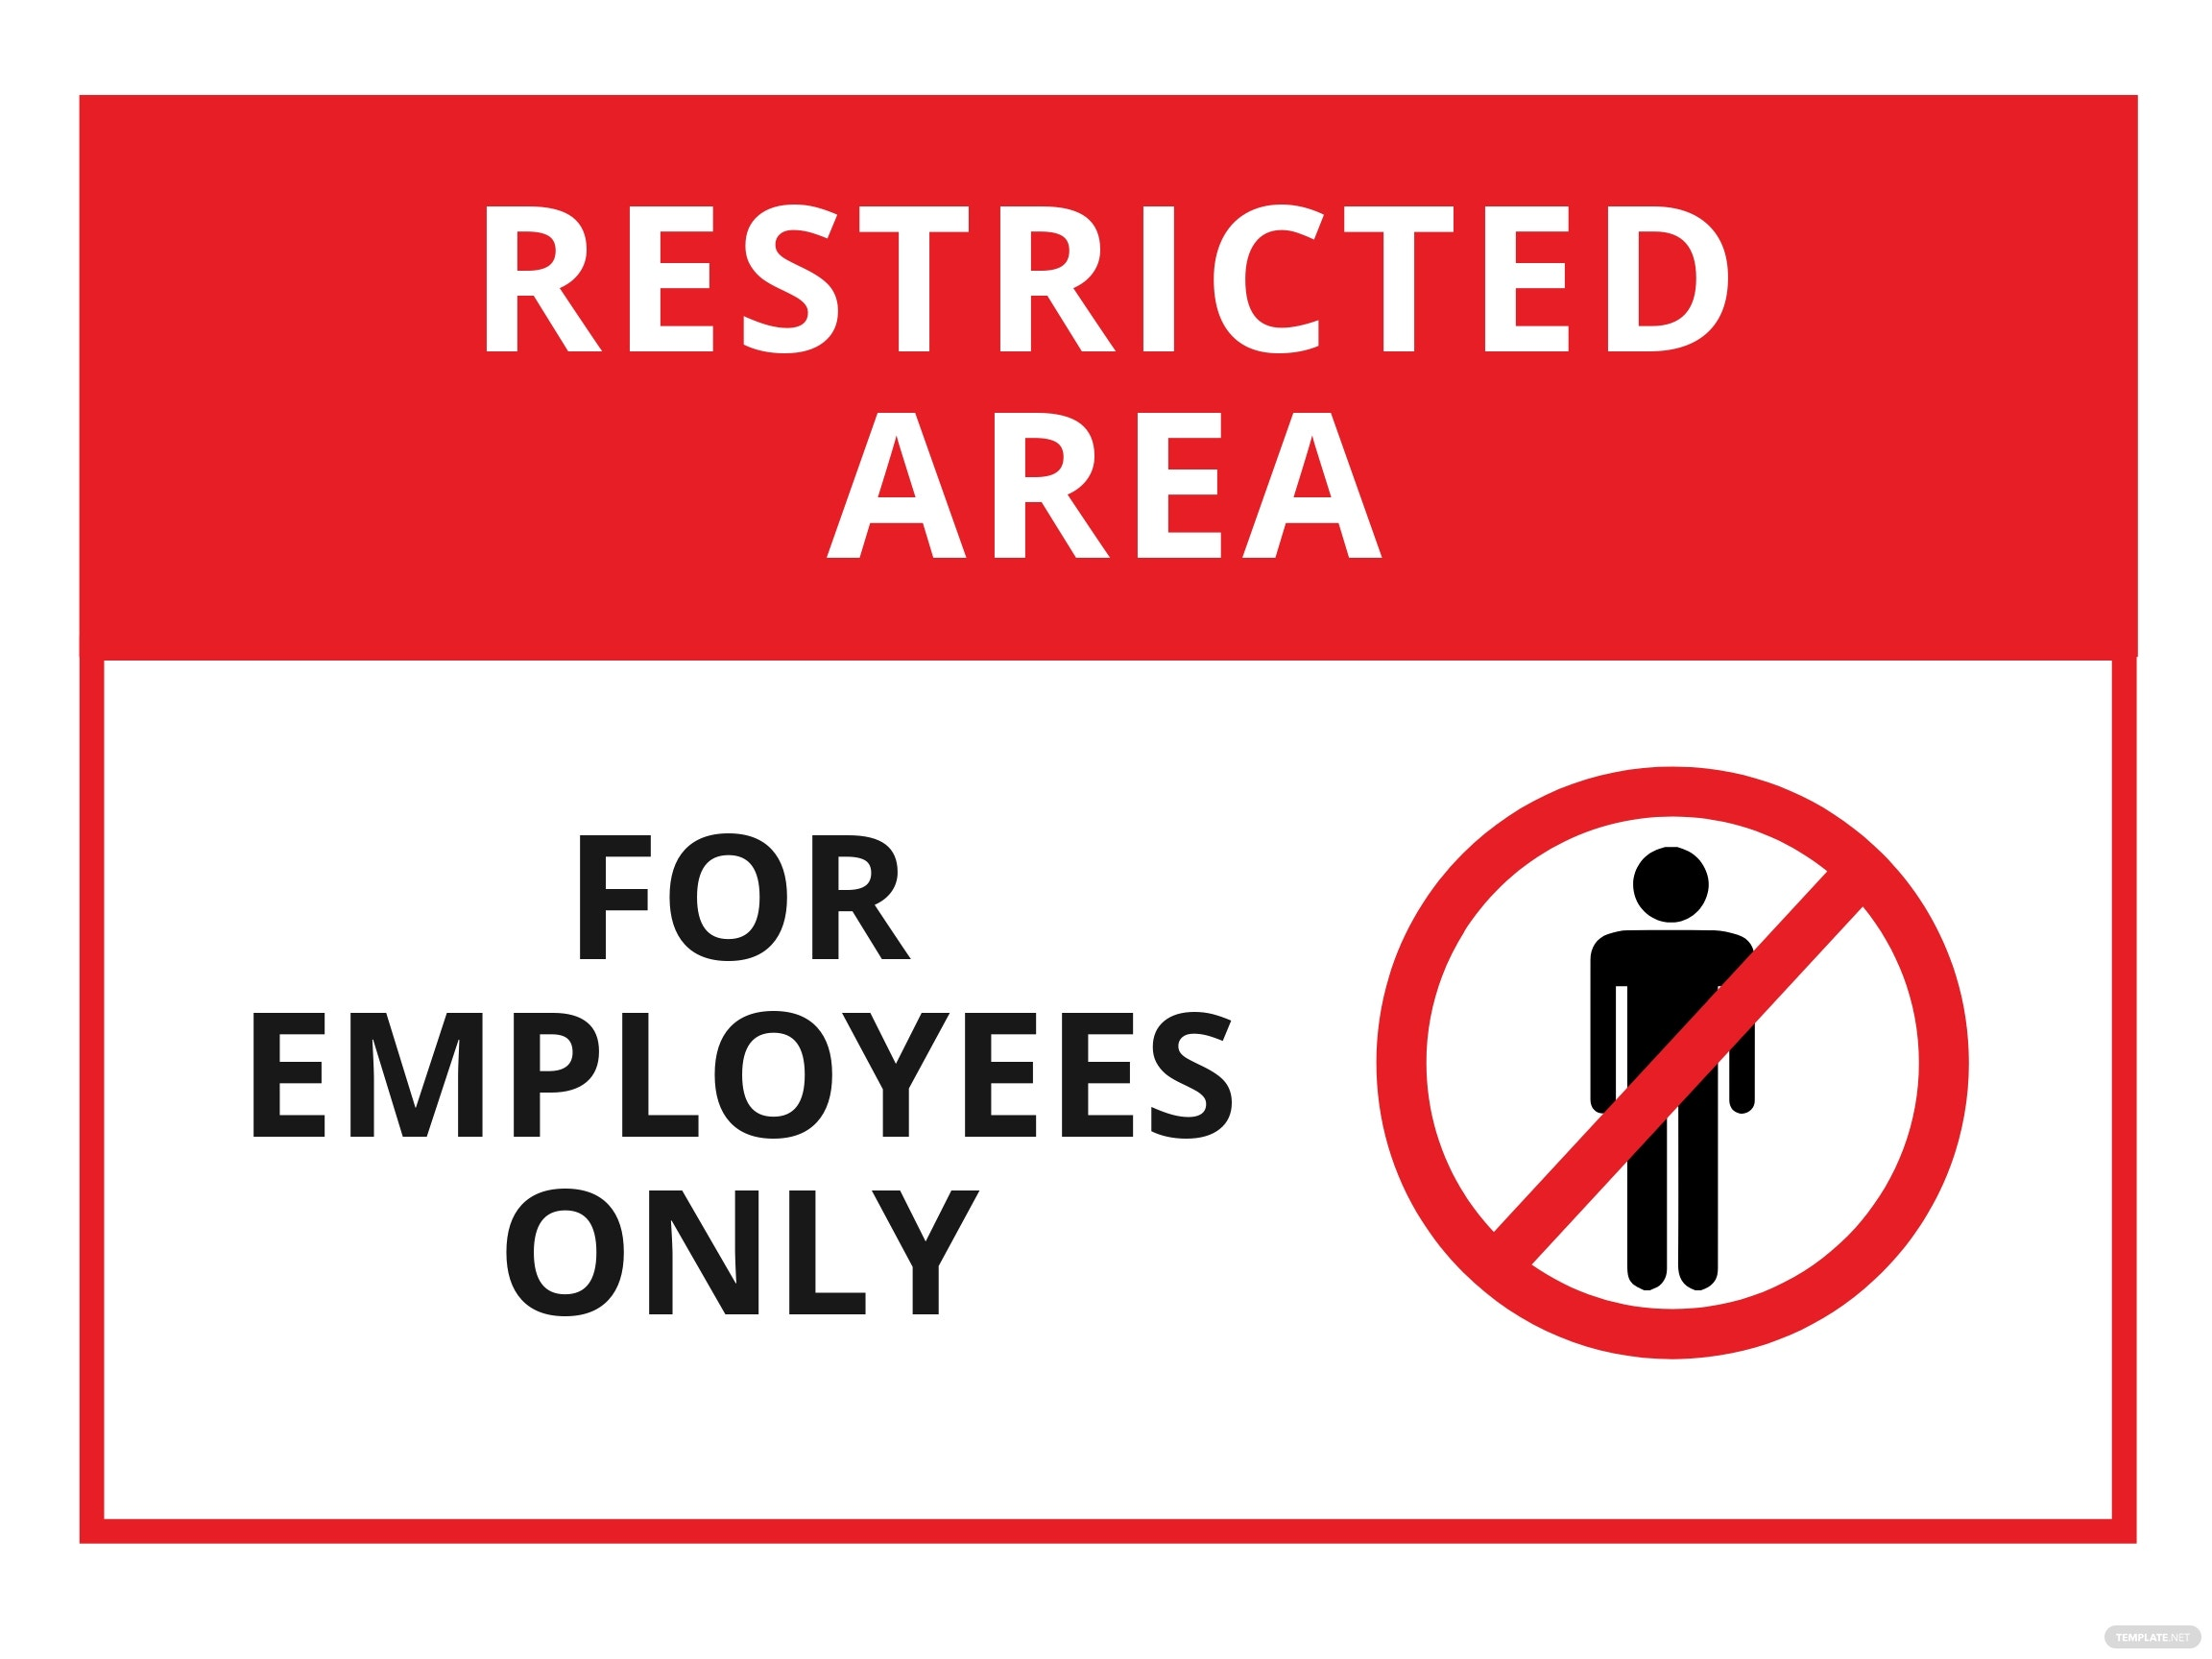 Restricted Area Employees Only Sign Template.jpe